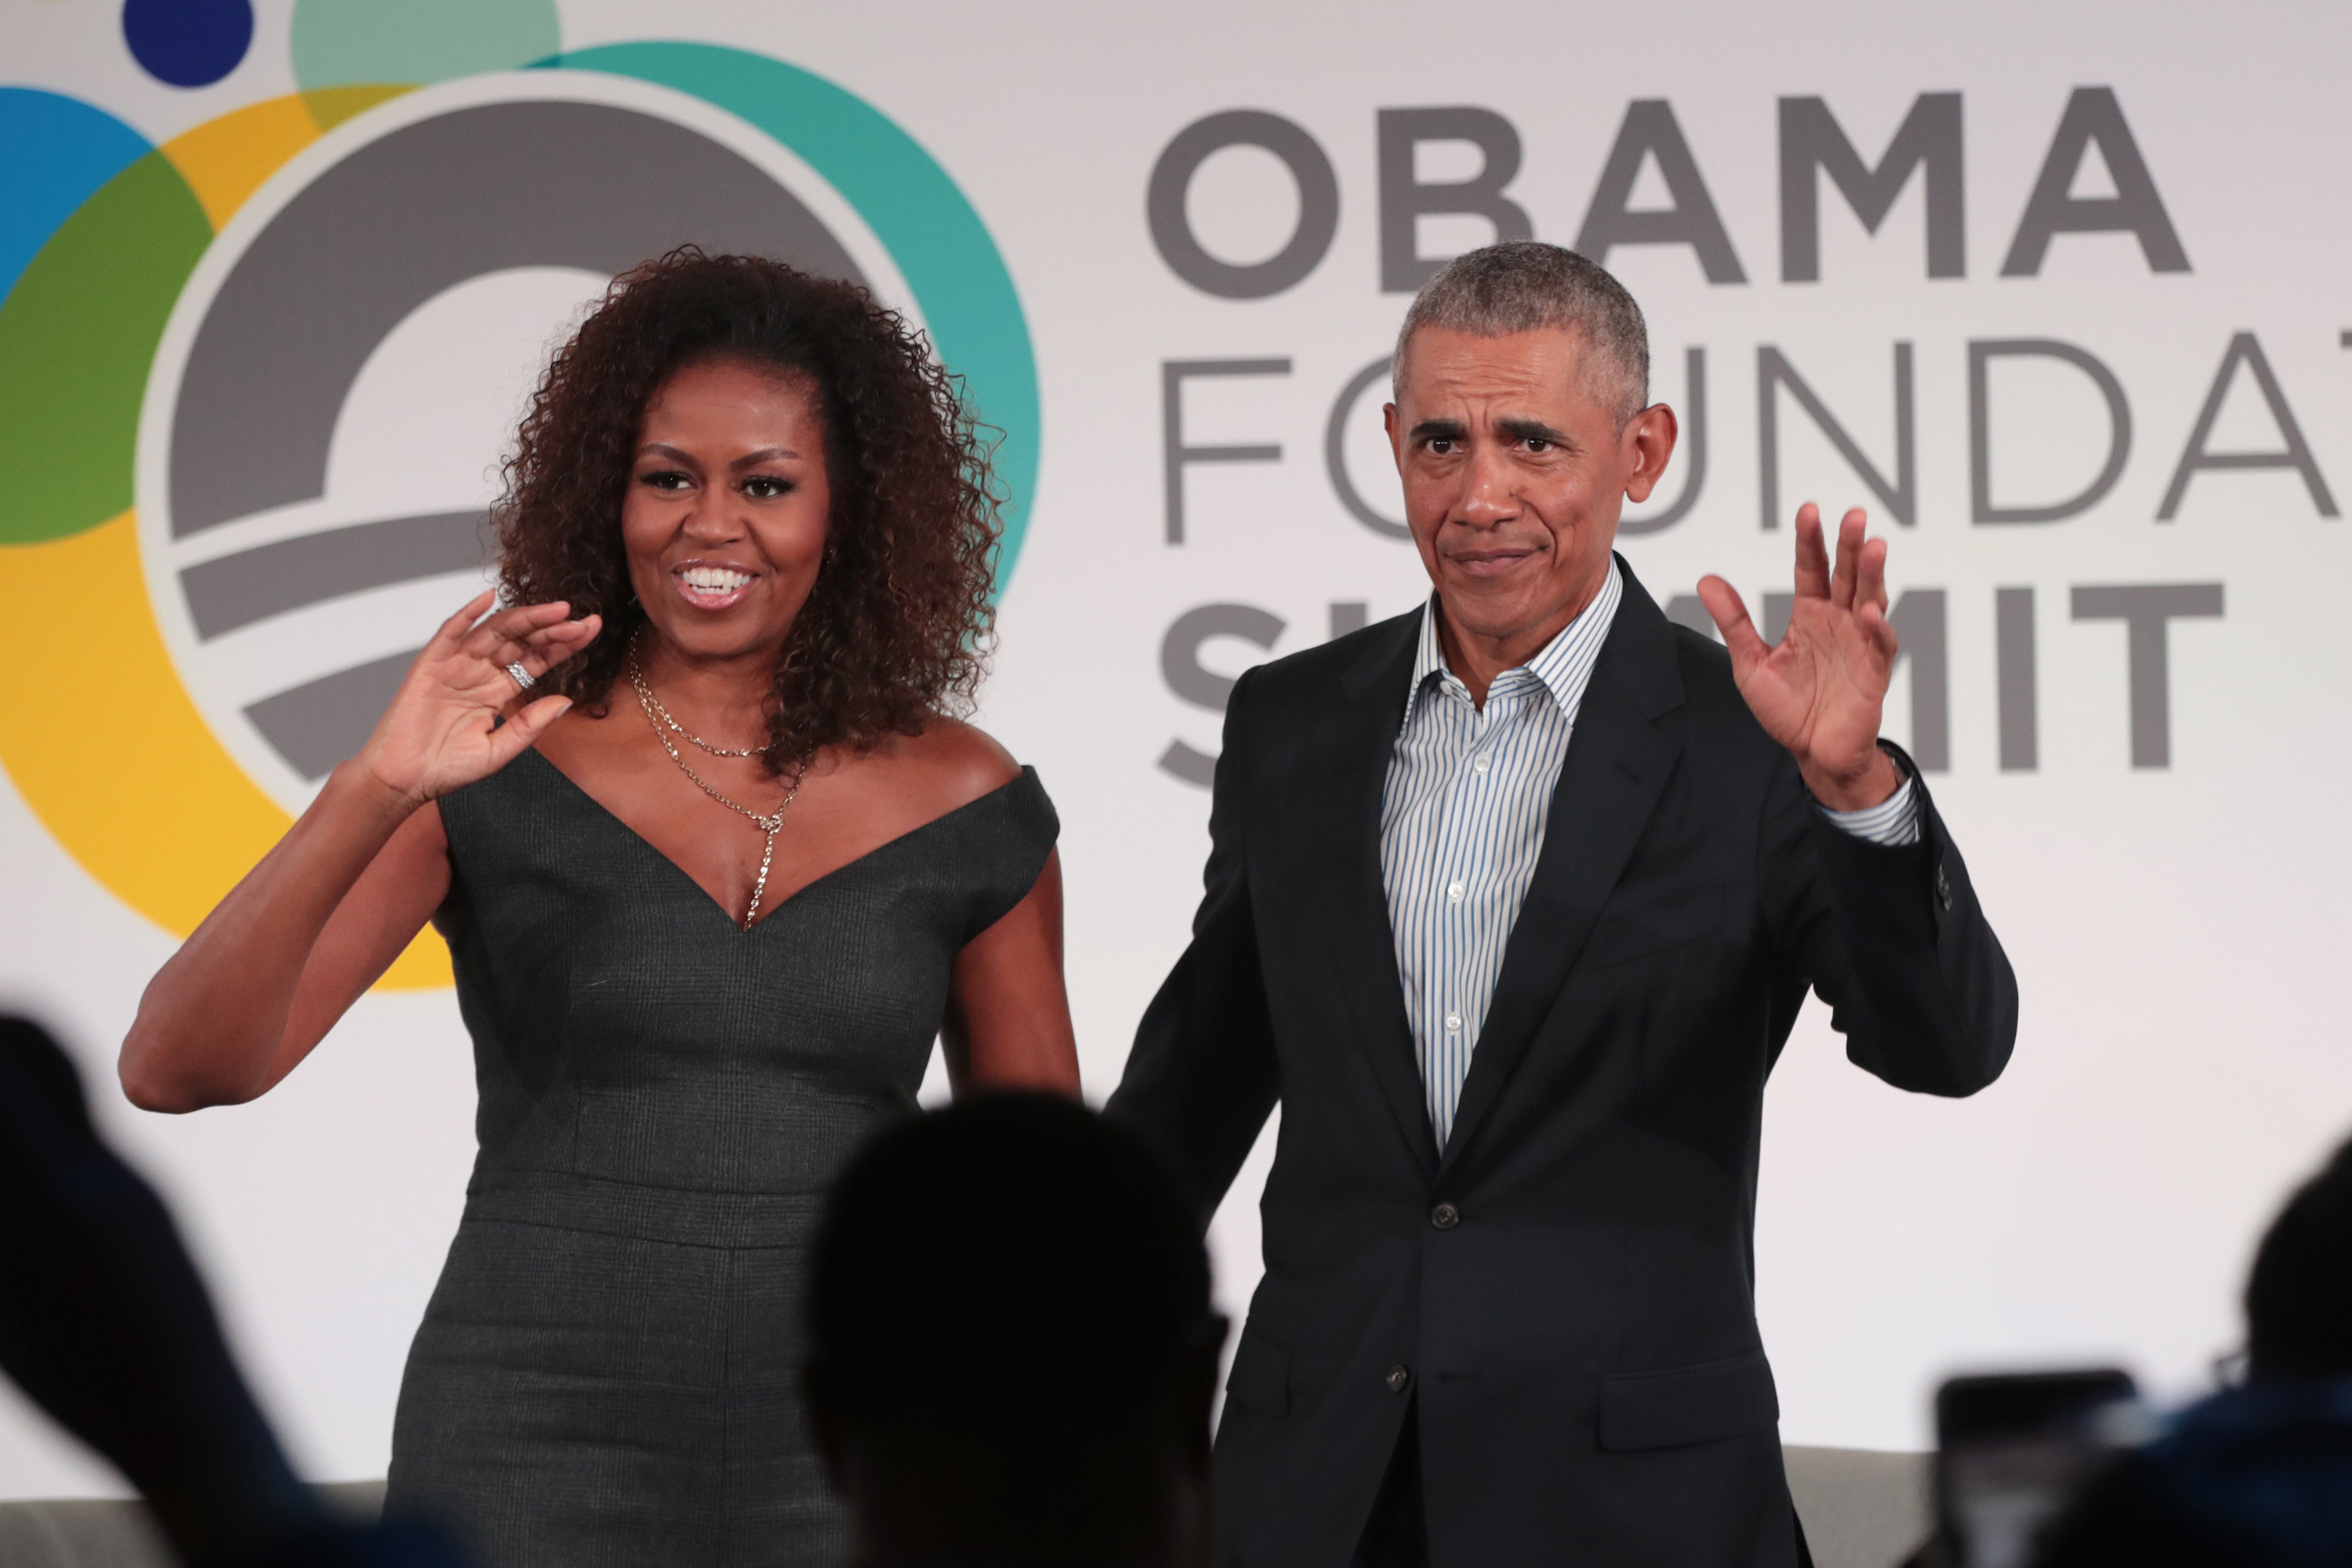 President Obama and former First Lady Michelle Obama waving to a crowd at the close of the Obama Foundation Summit in 2019